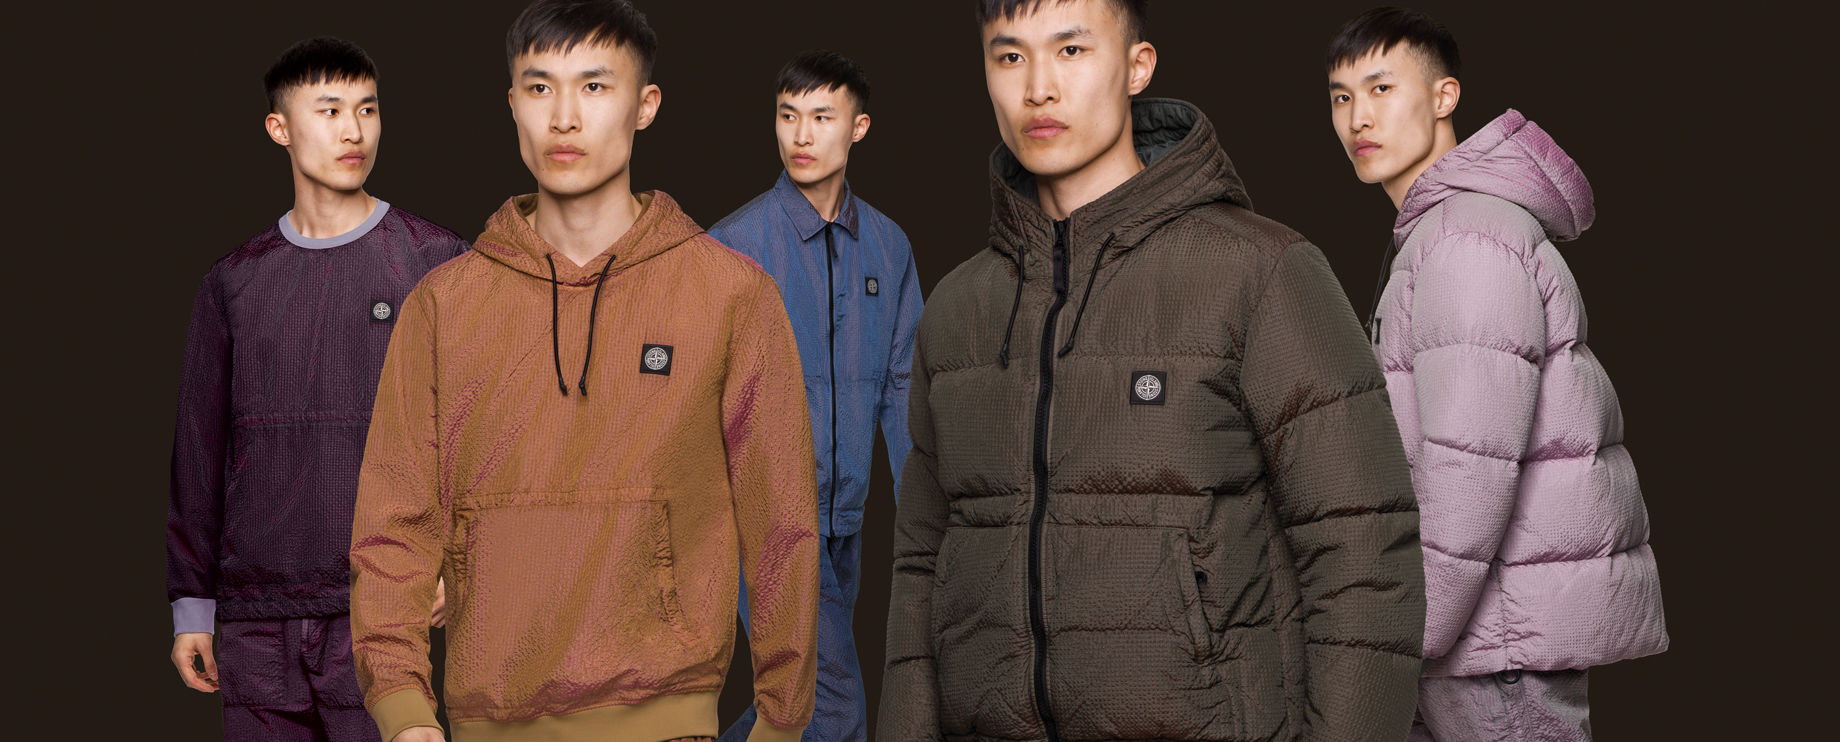 Five shots of the same model, wearing different Nylon Metal outfits with the Stone Island patch at chest: purple pants with a matching  crewneck top, a copper hooded jacket with front pouch pocket, blue pants and a matching jacket with shirt collar and zi